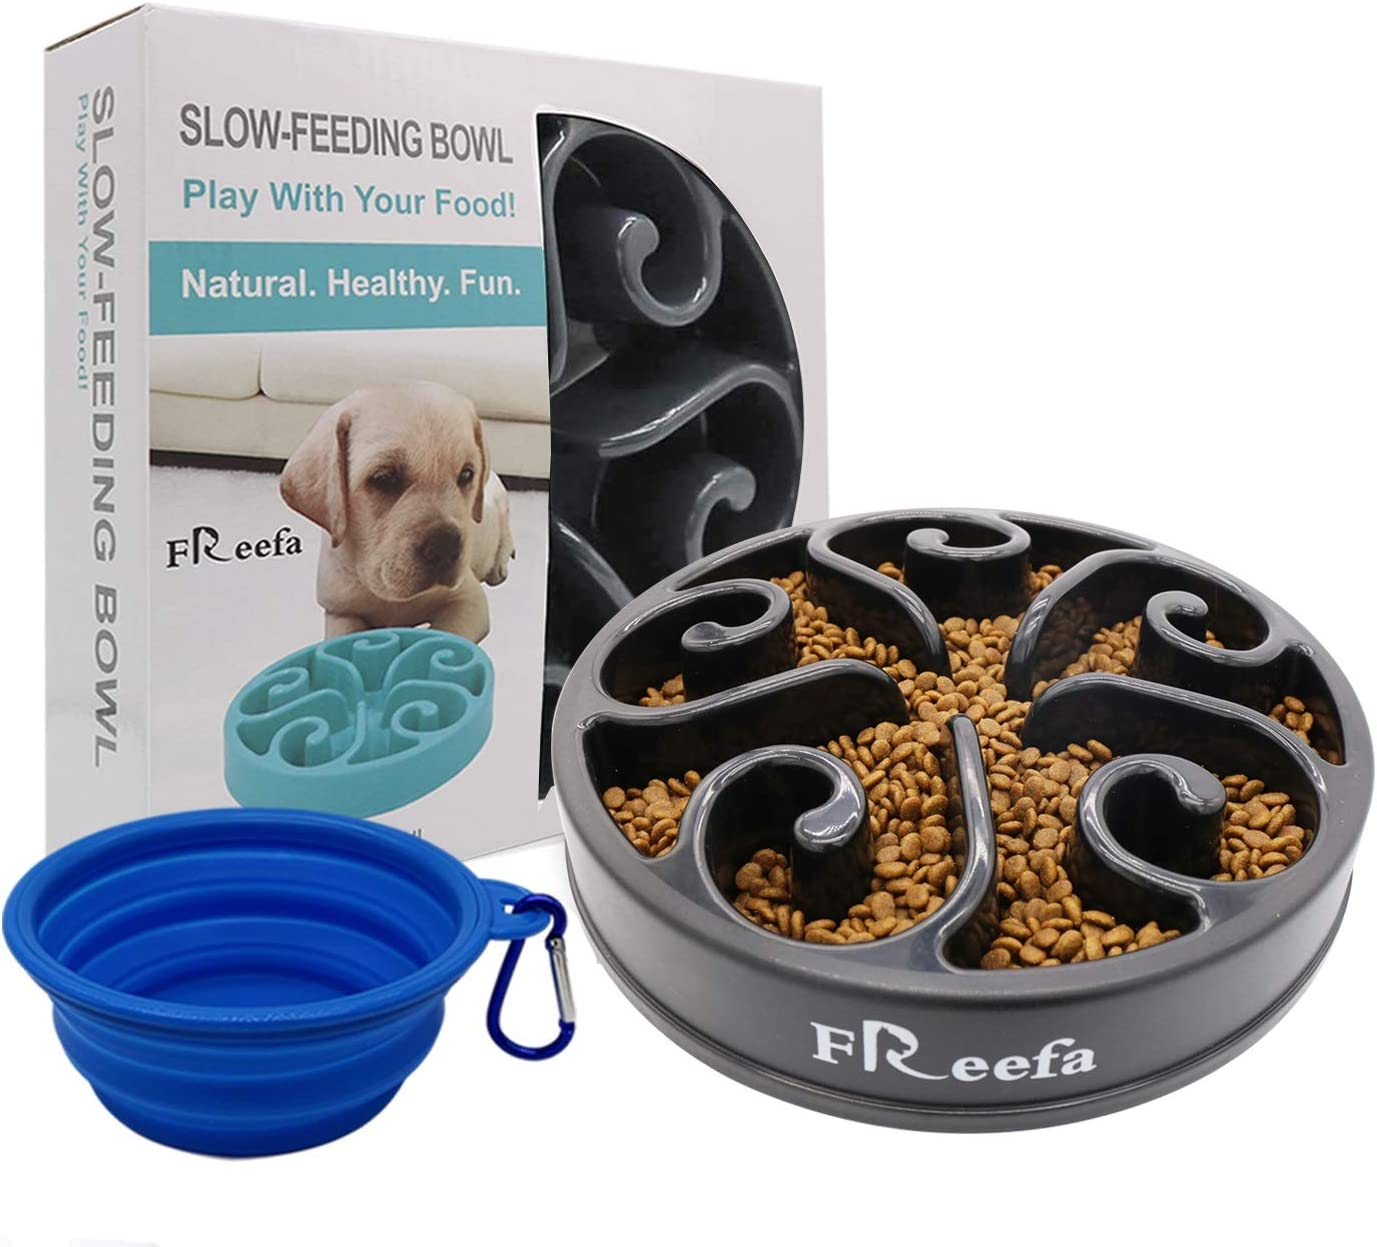 Freefa Slow Feeder Dog Bowl Bloat Stop Dog Food Bowl Maze Interactive Puzzle Non Skid, Come with Free Travel Bowl (Grey, for Small/Medium Dog)